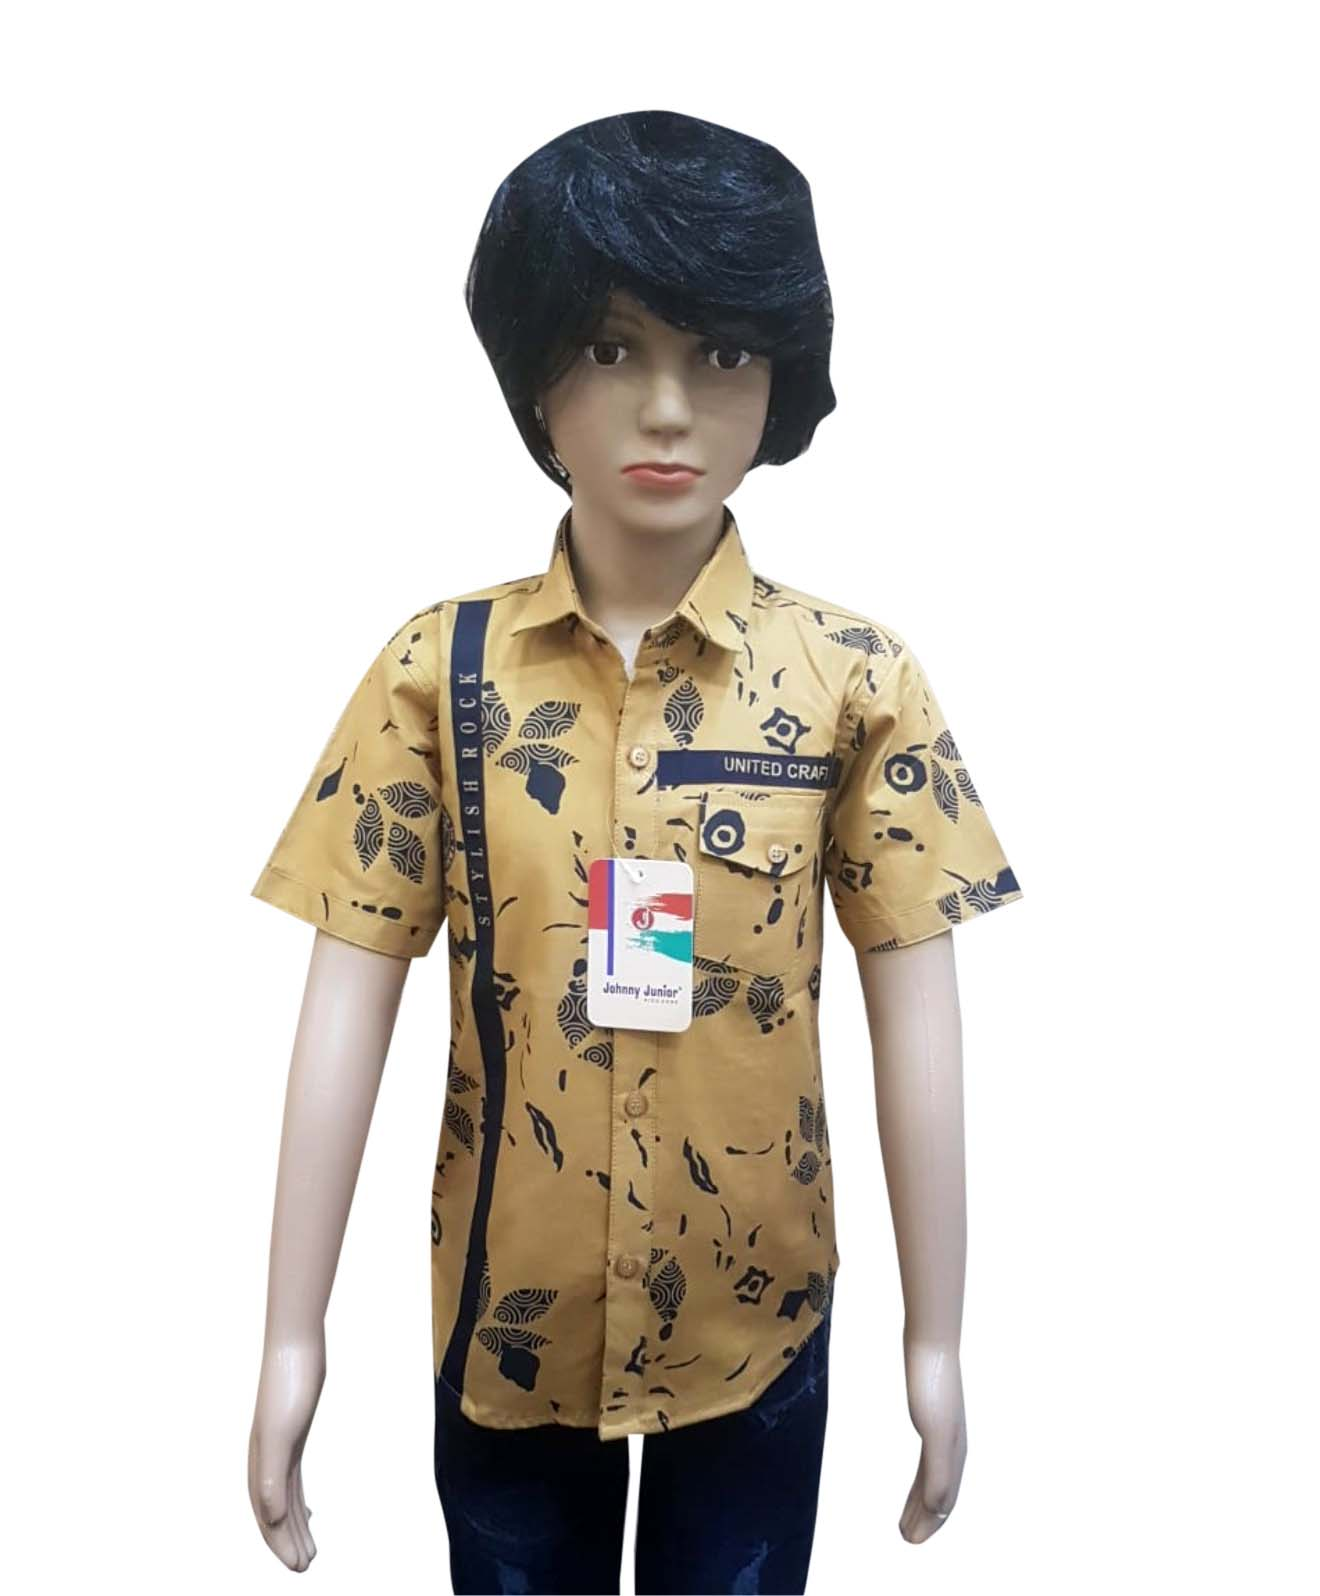 KHS AUG 2019 12-KHAKHI NAVY KIDS HALF SLEEVES SHIRT